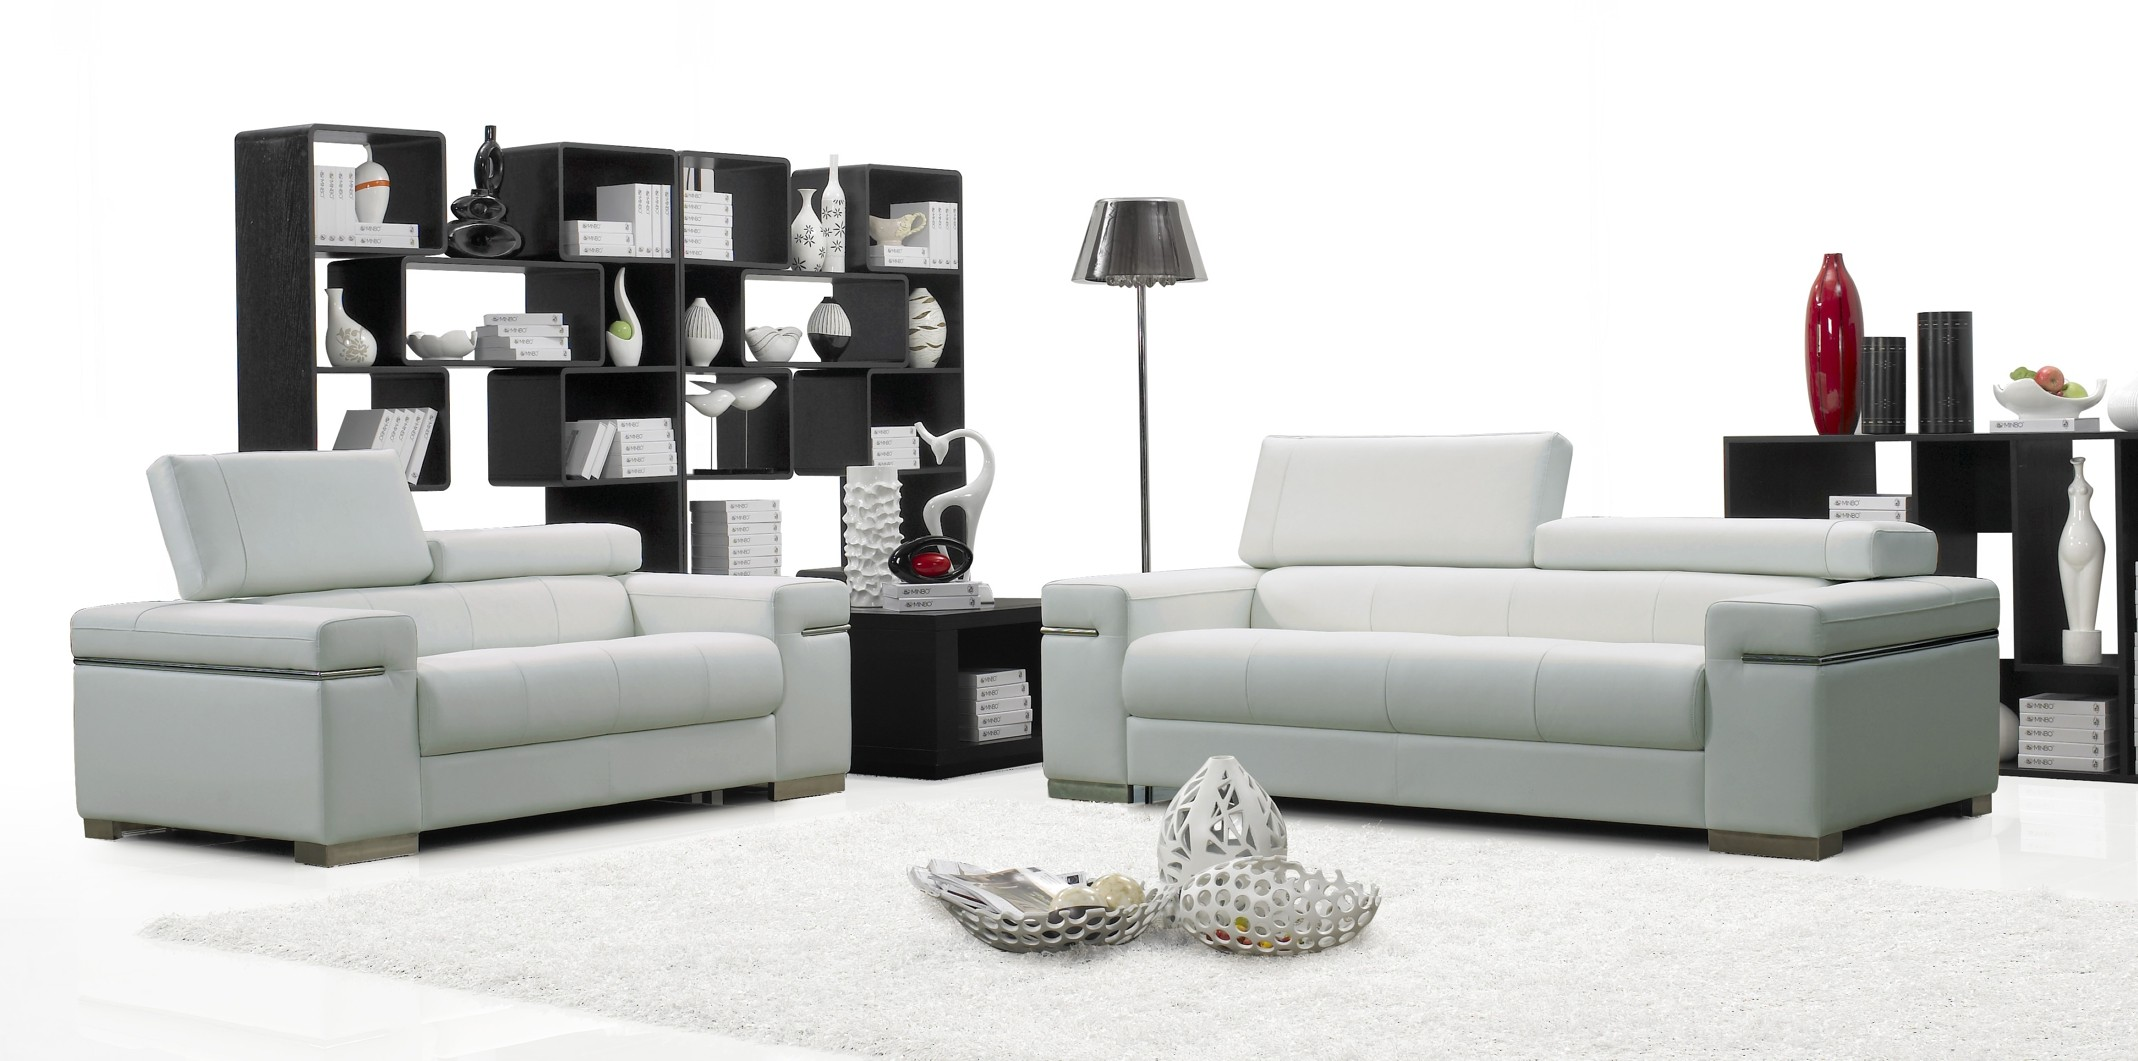 Modern sofa sets white modern sofa set vg 74 leather sofas for Contemporary living room furniture sets